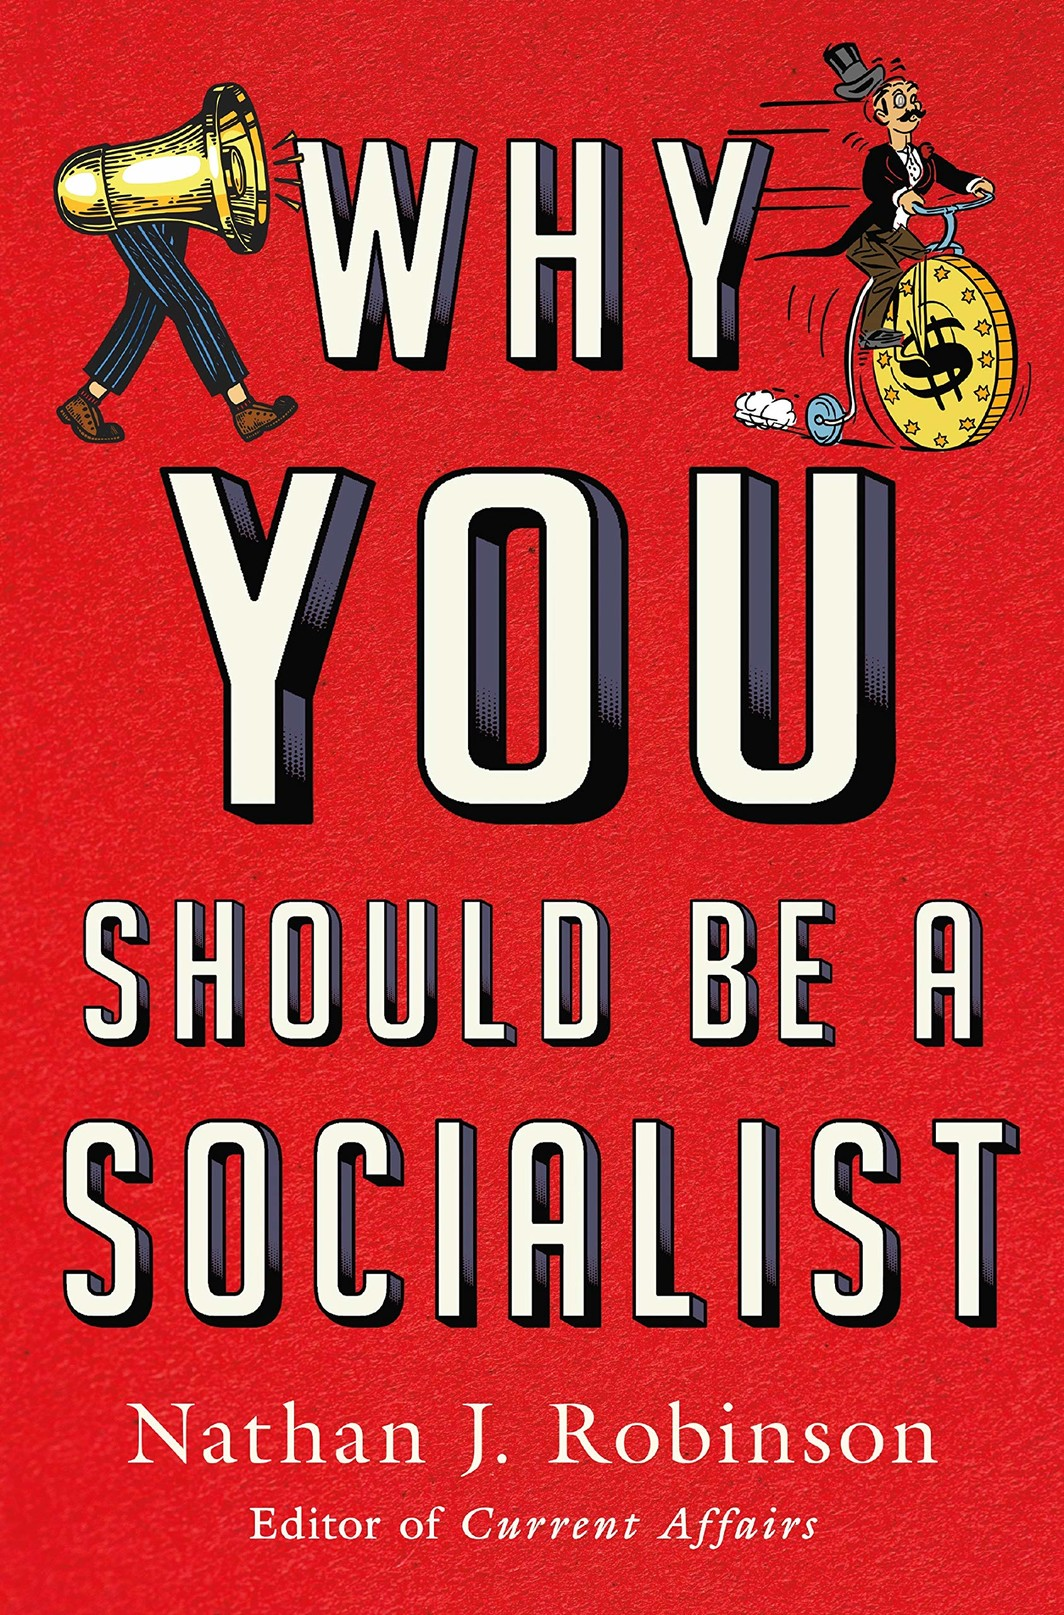 The cover of Why You Should Be a Socialist